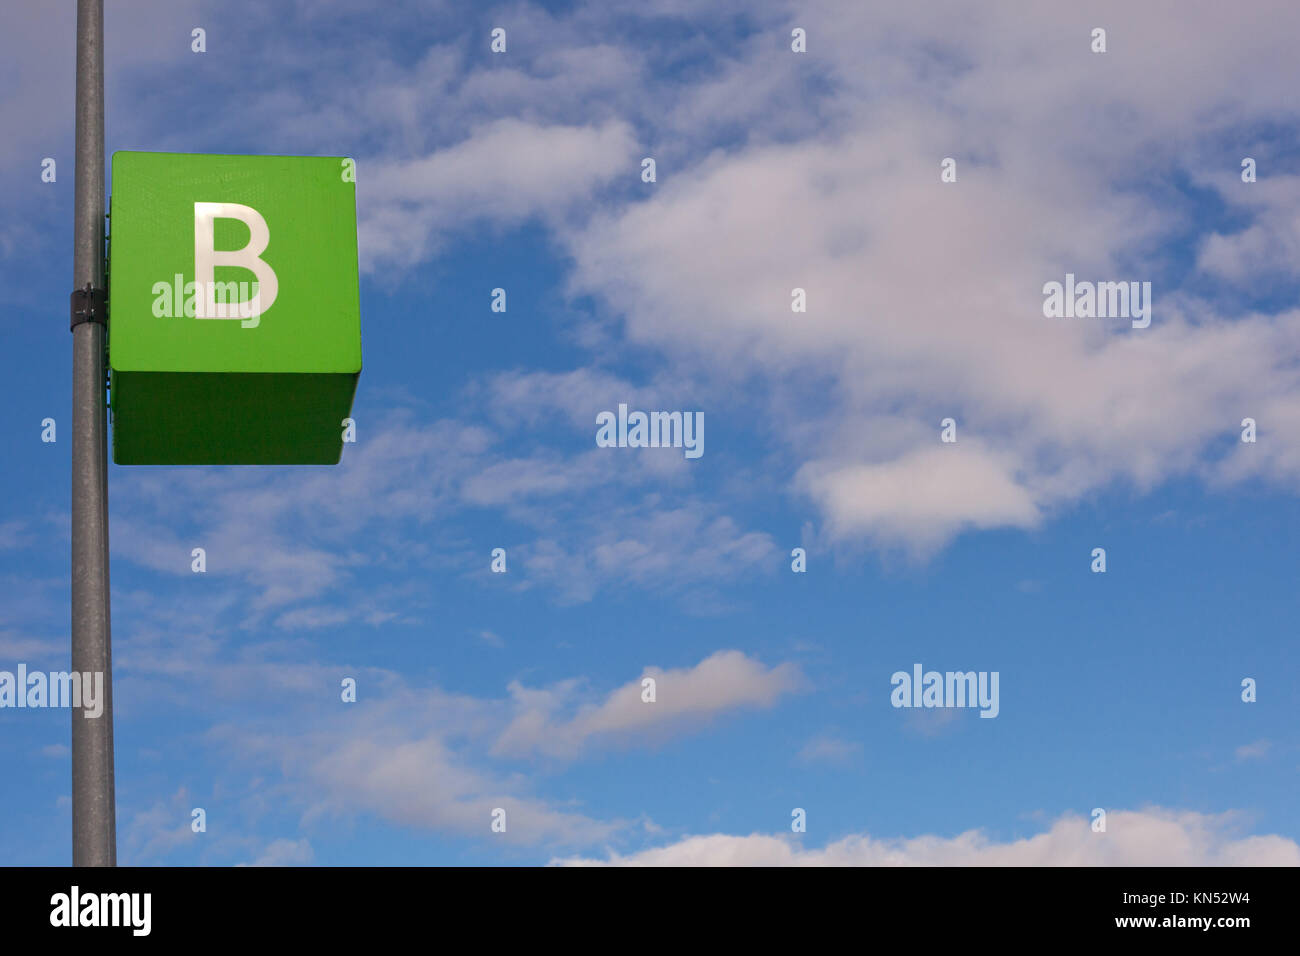 Parking signal pole of letter B area over blue cloudy sky. Stock Photo